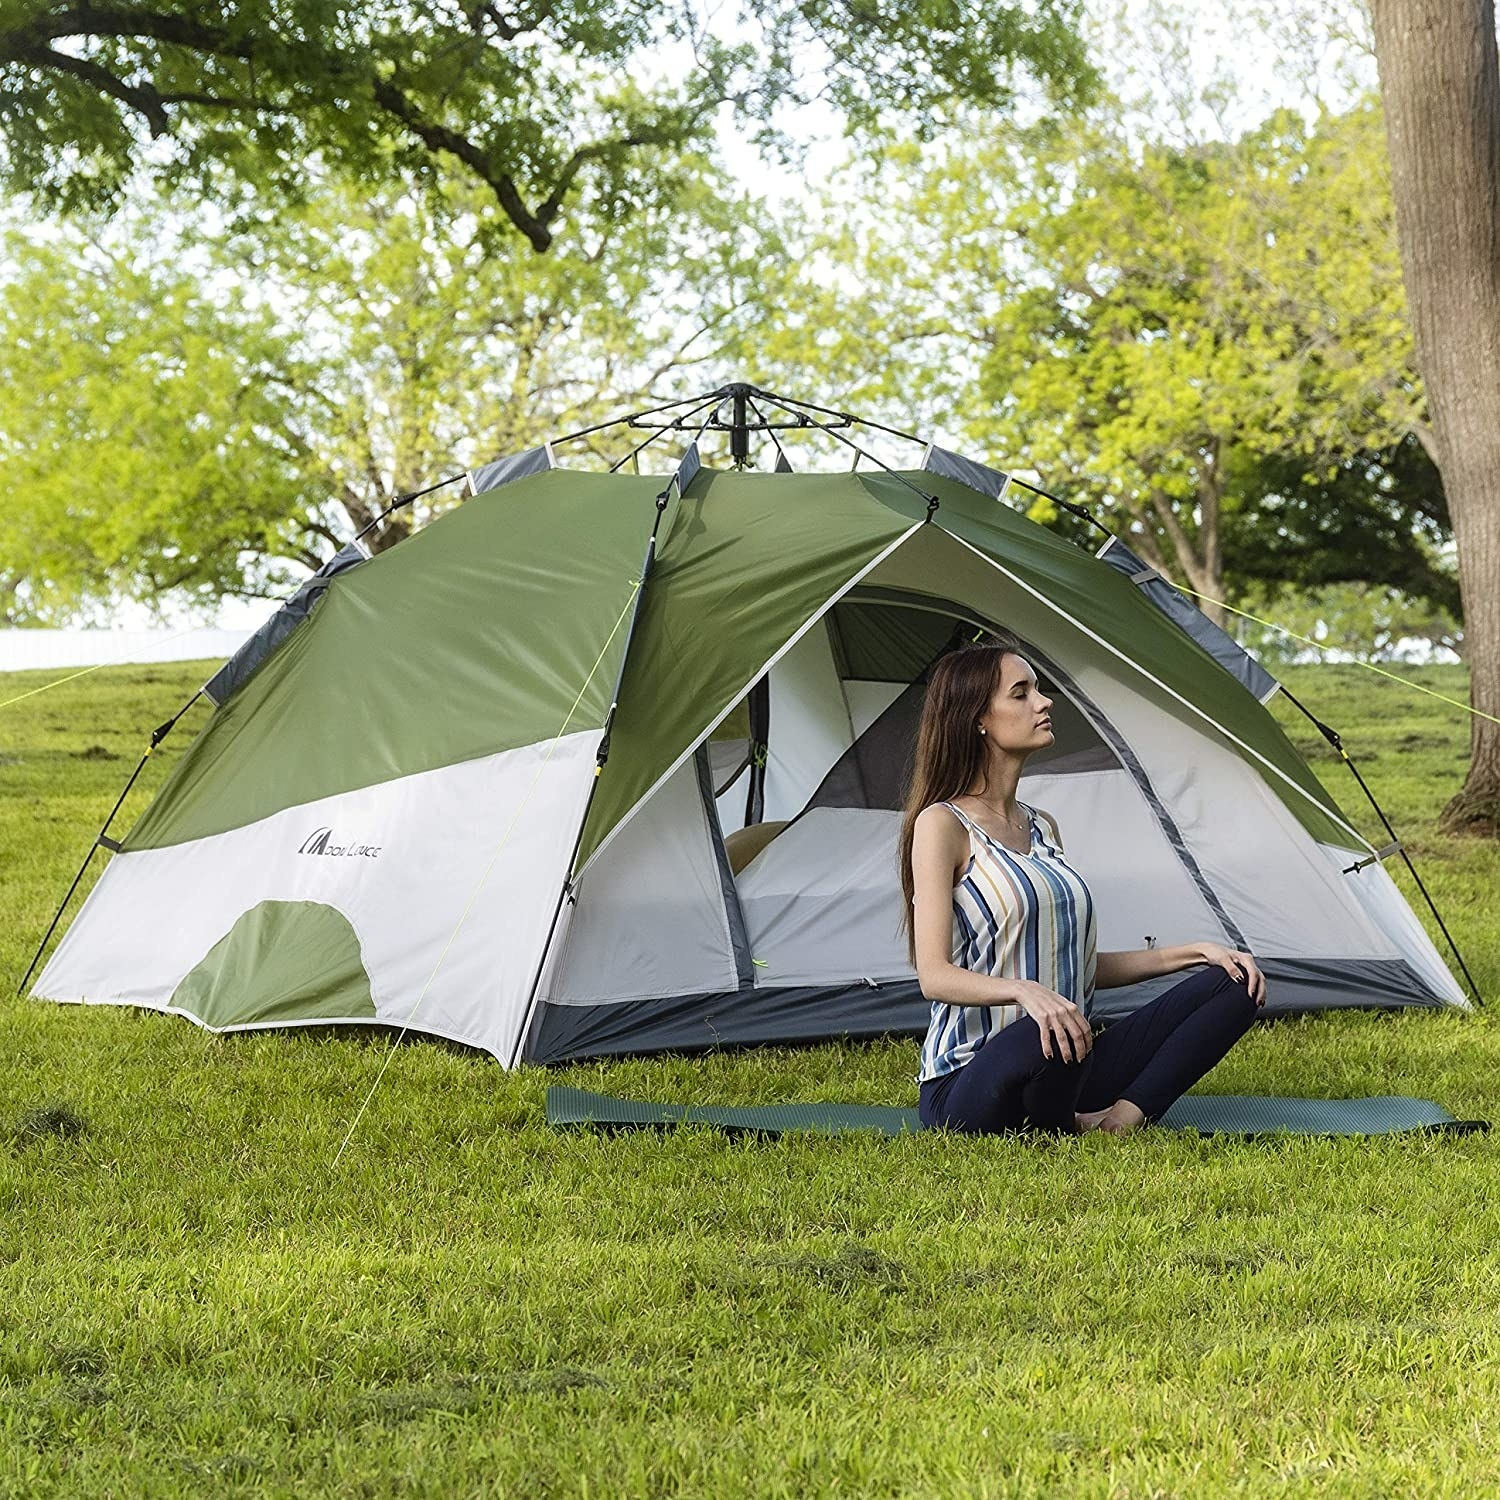 Person sitting outside large tent